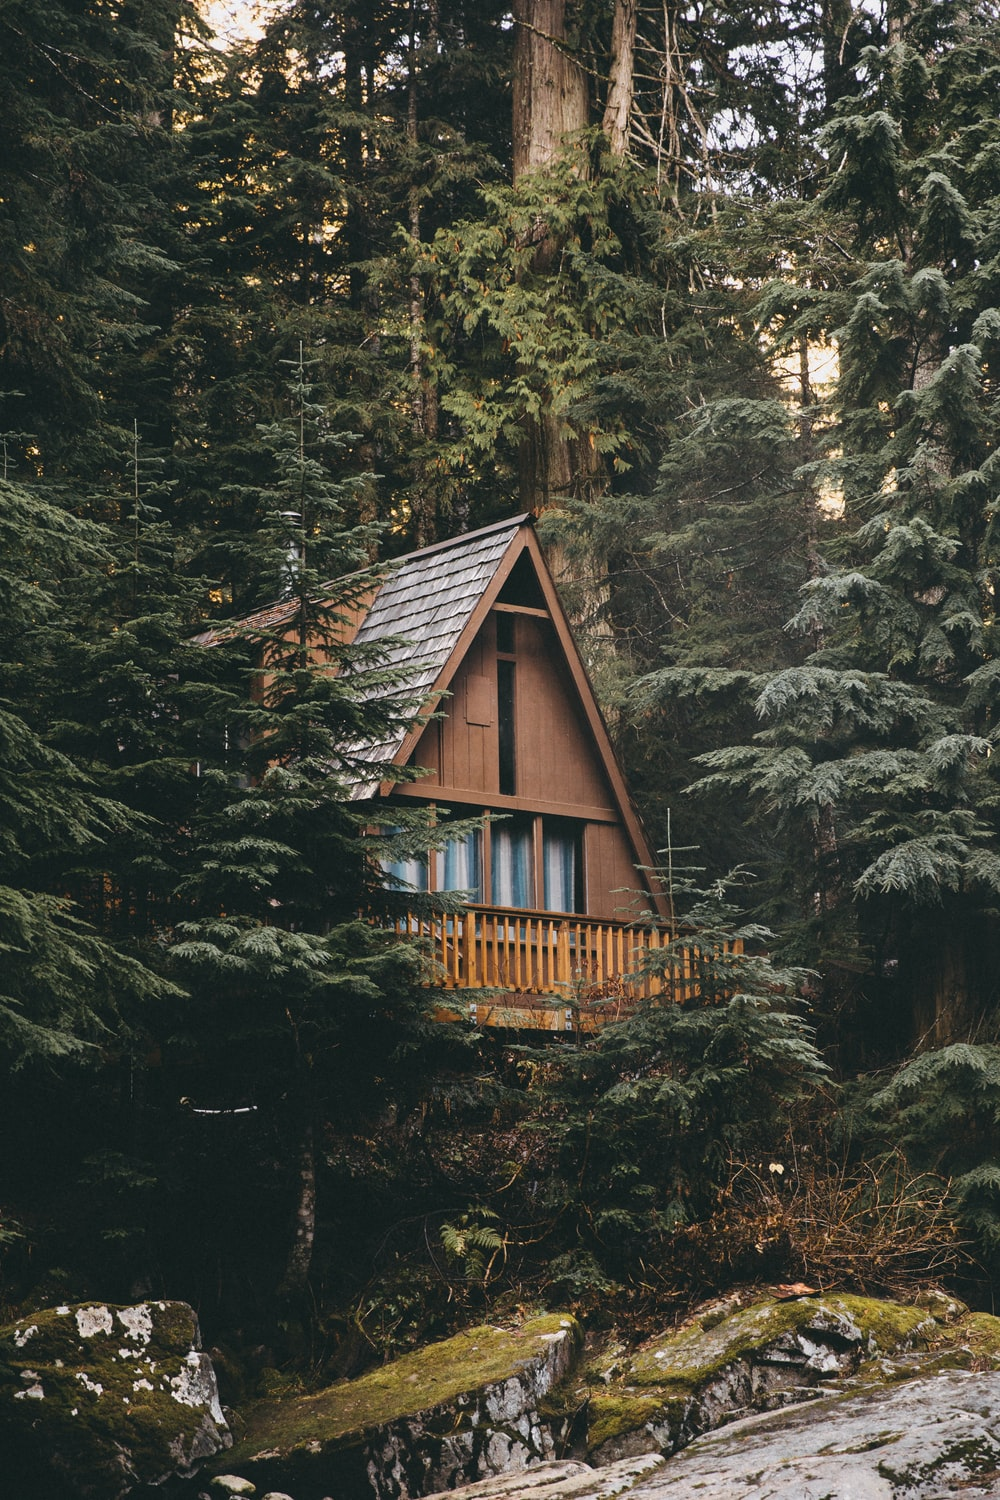 brown and grey wooden cabin surrounded by trees